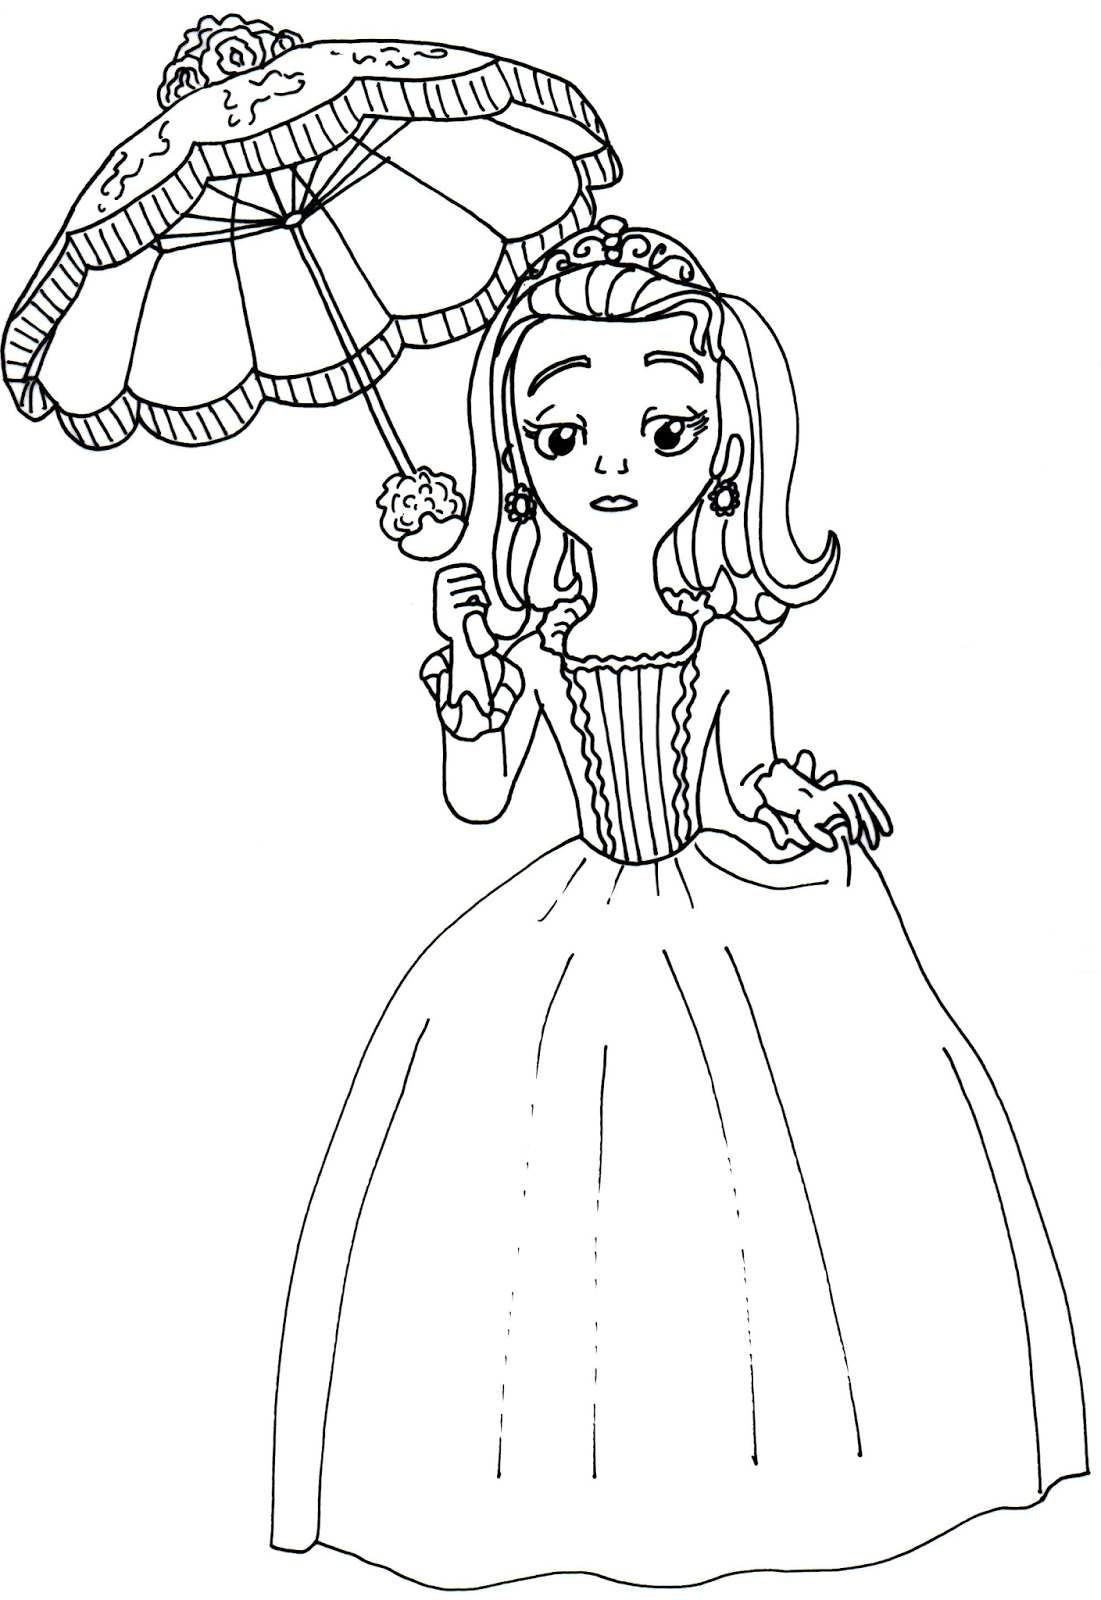 Gambar Sofia The First Coloring Pages March 2014 Jpeg Png Gif Best